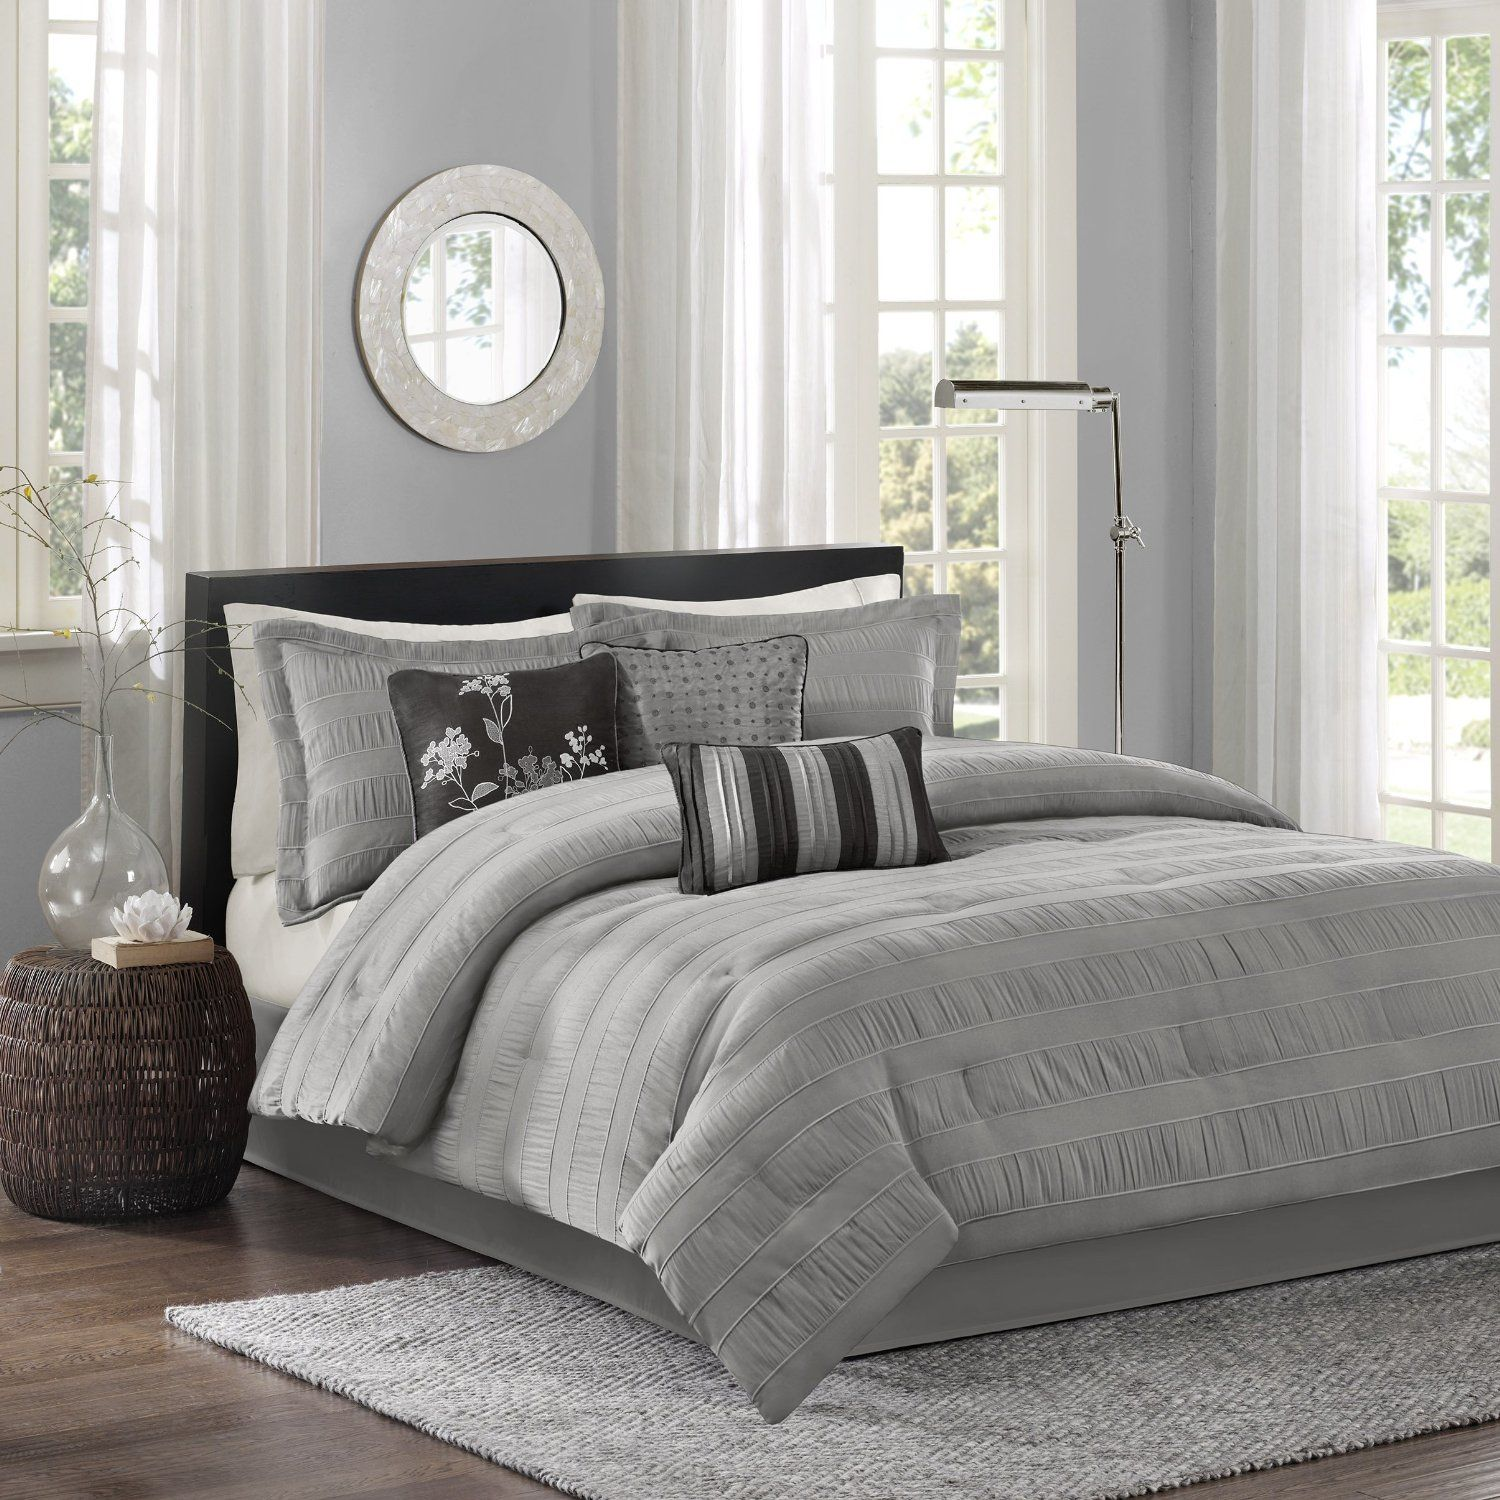 7 piece comforter set queen grey